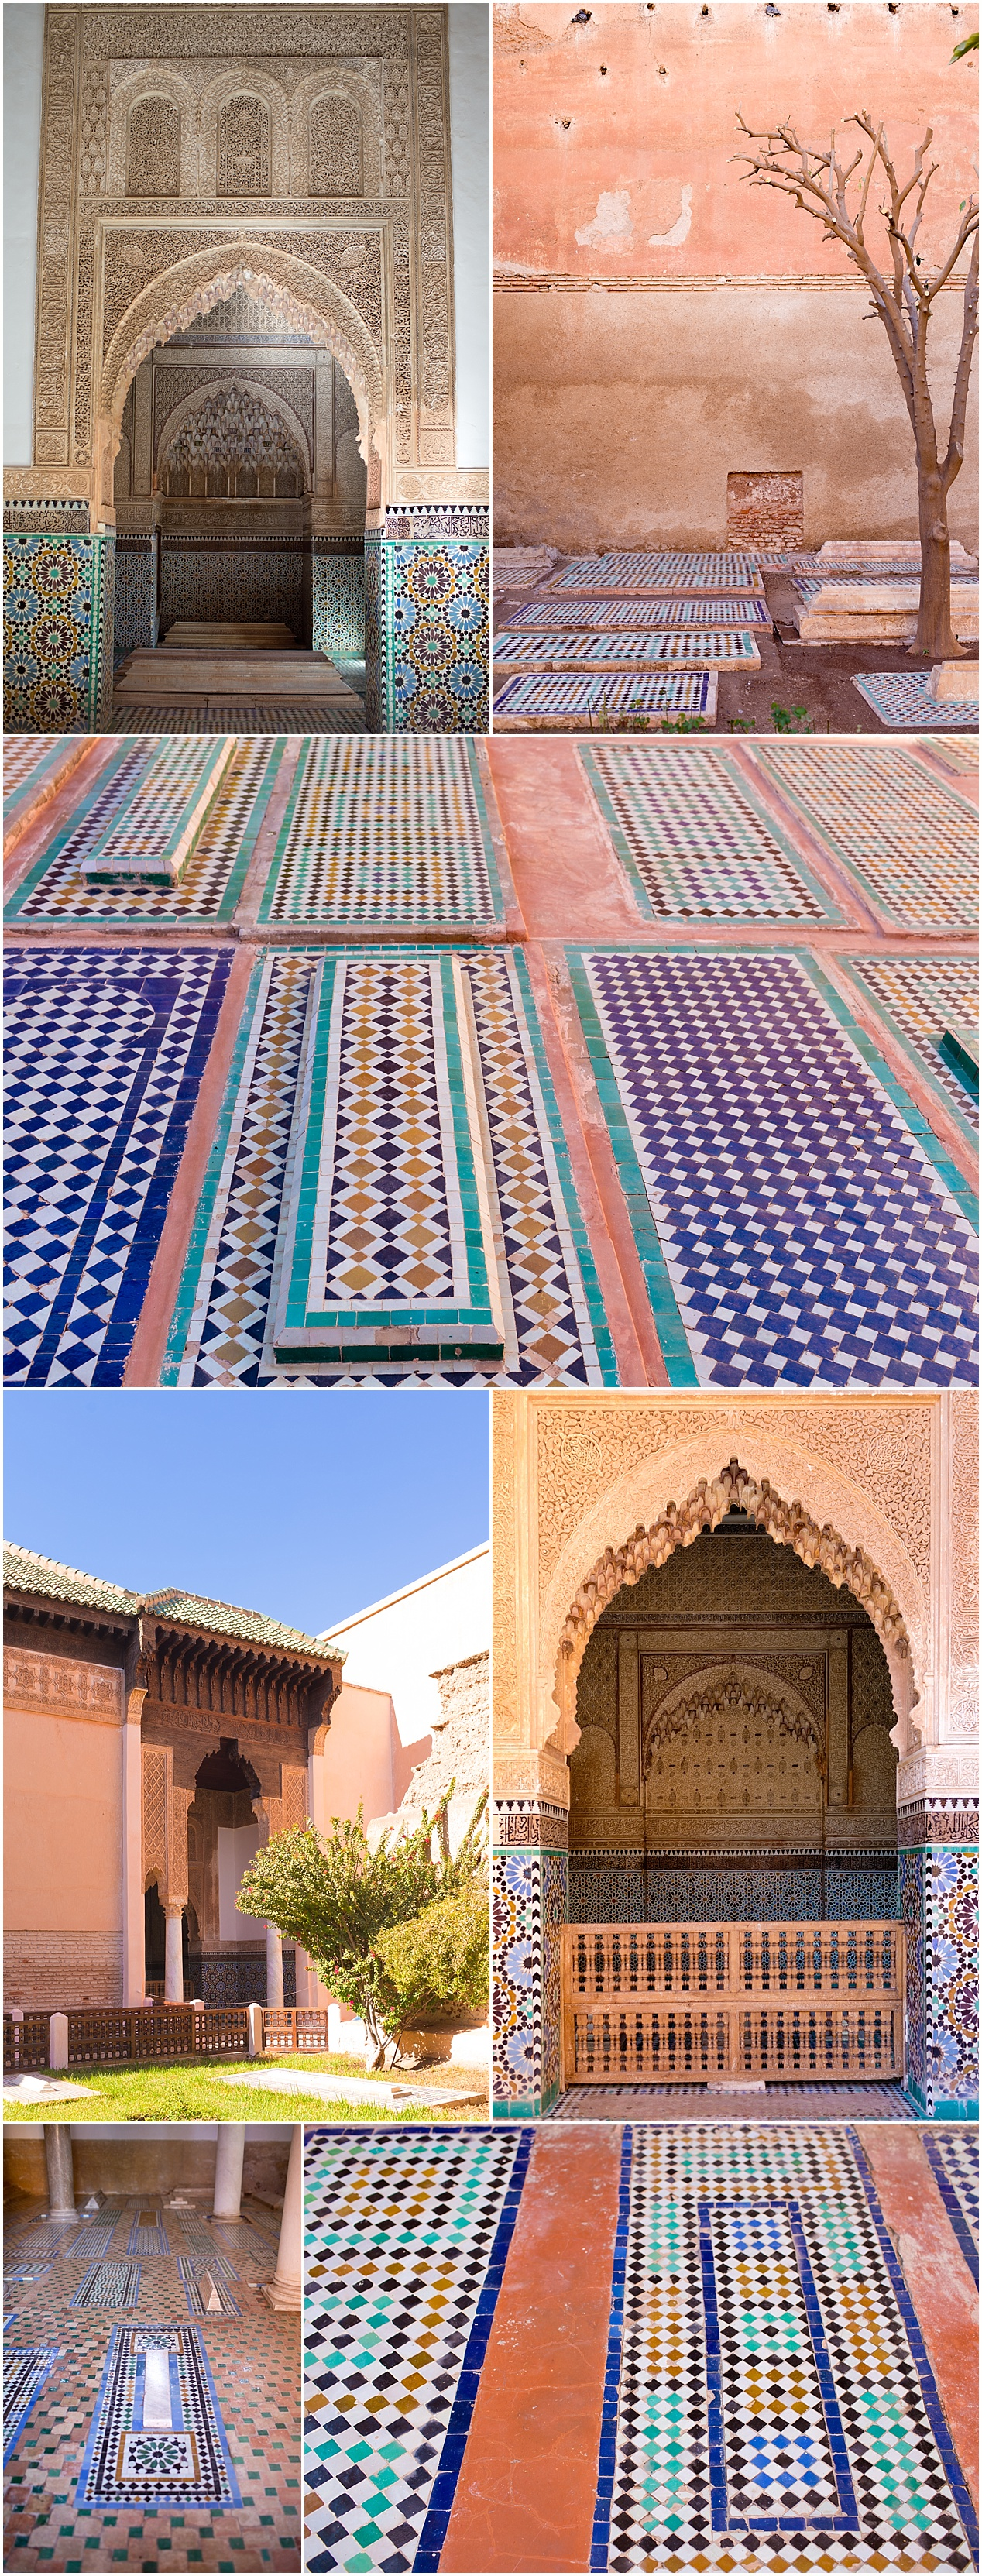 Saadian tombs of Marrakech, Morocco - travel blog